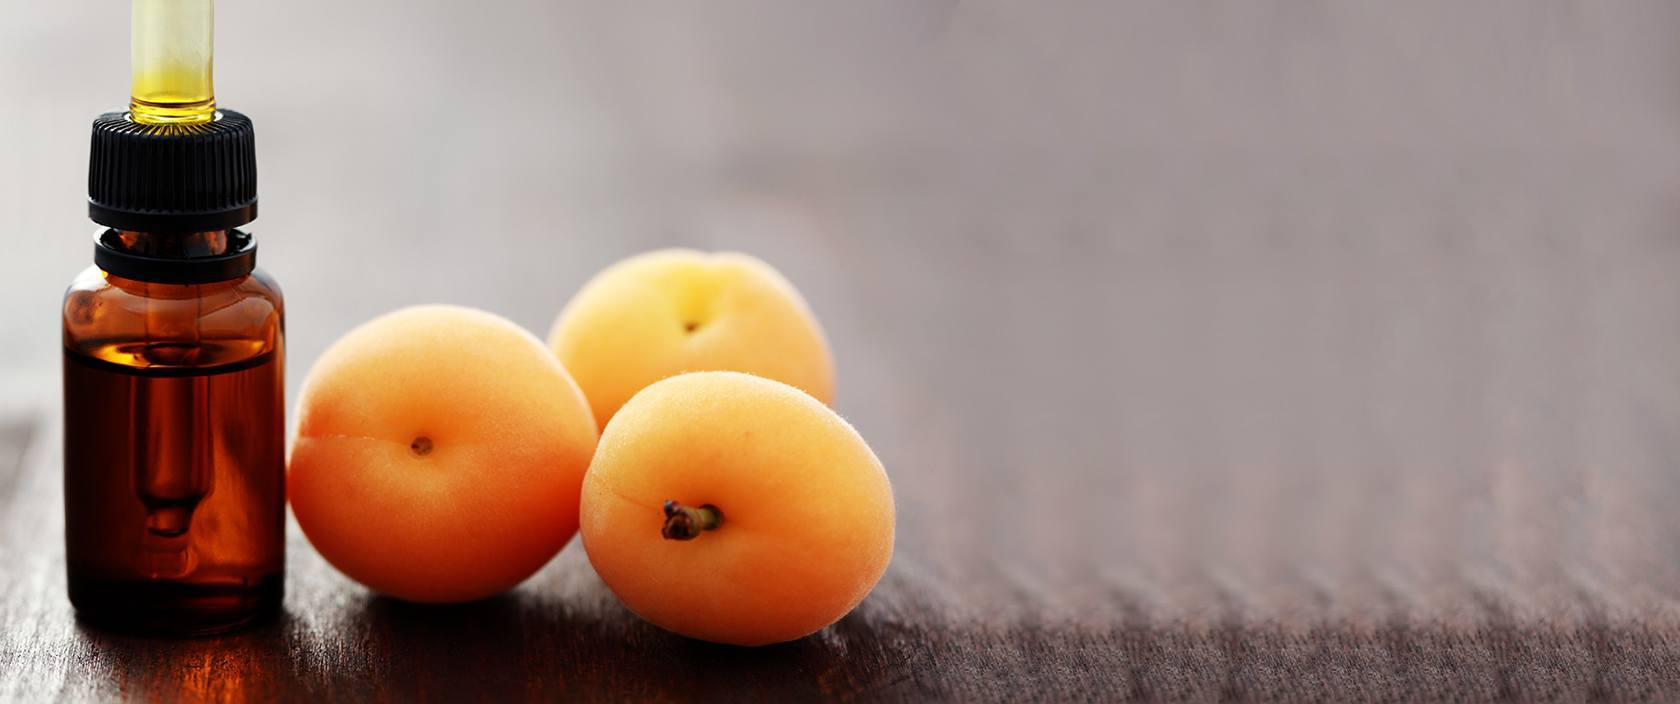 apricot-oil-for-everyone.jpg